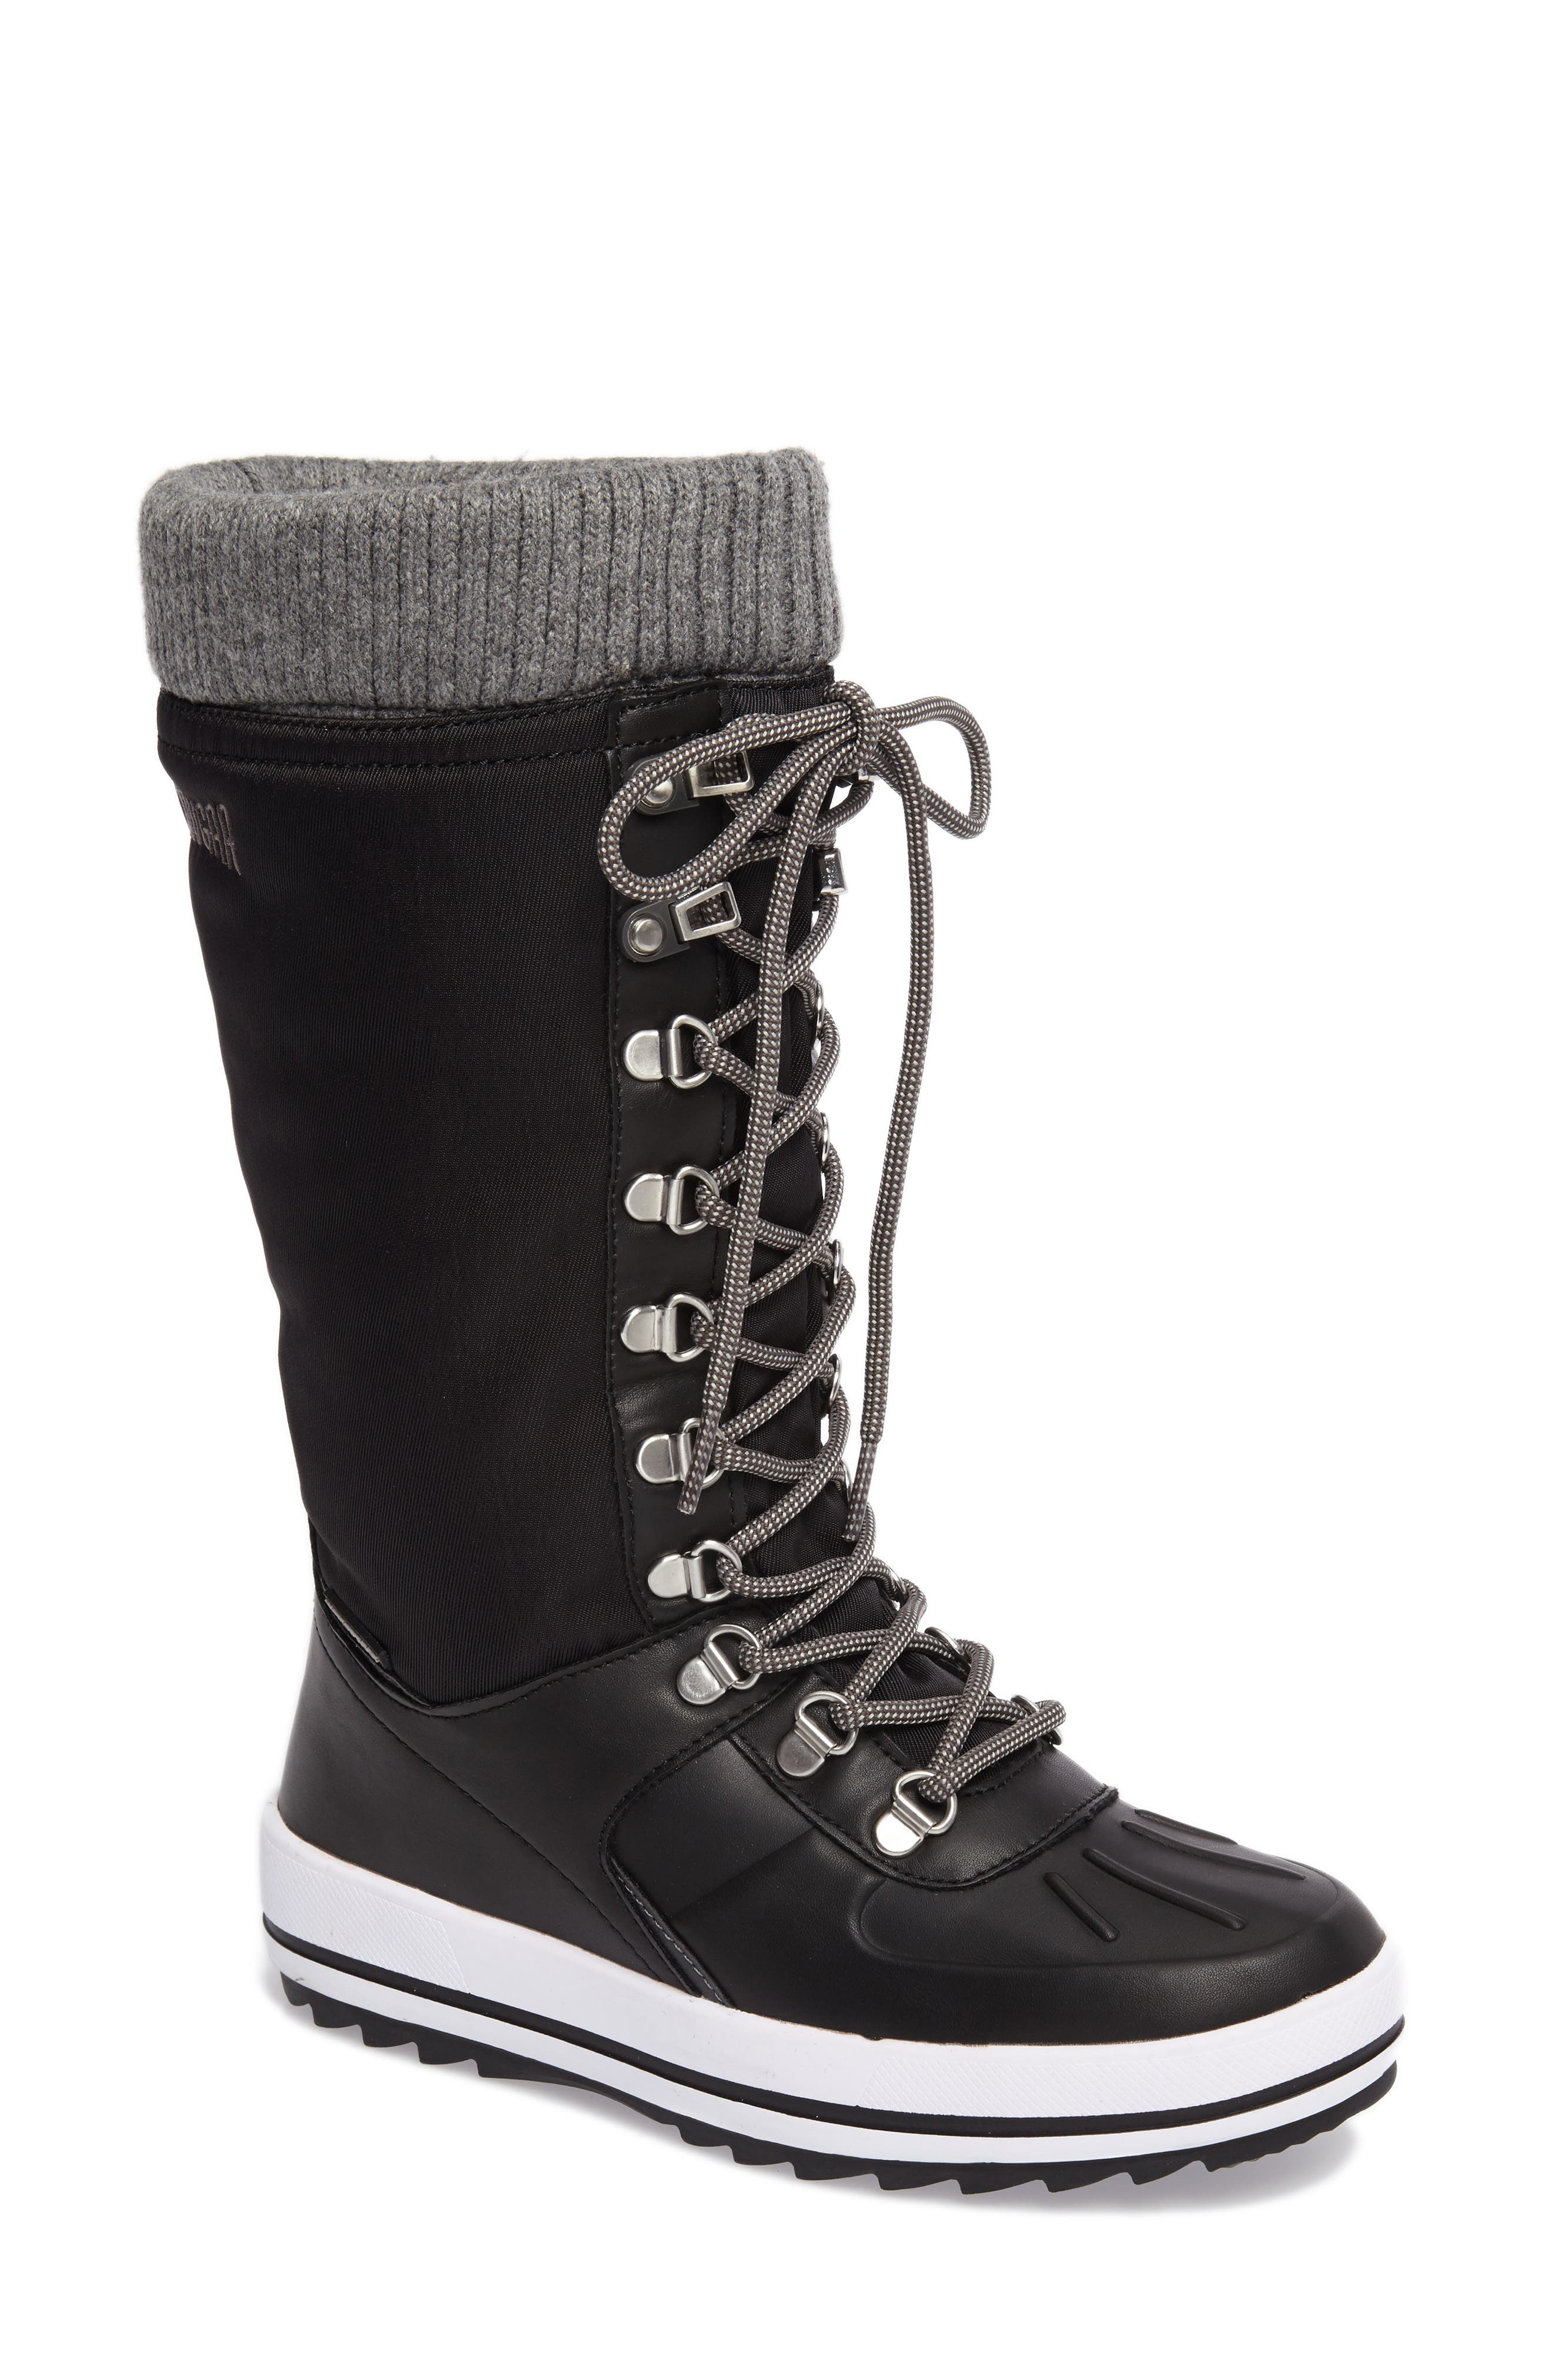 Vancouver Waterproof Winter Boot,                         Main,                         color,